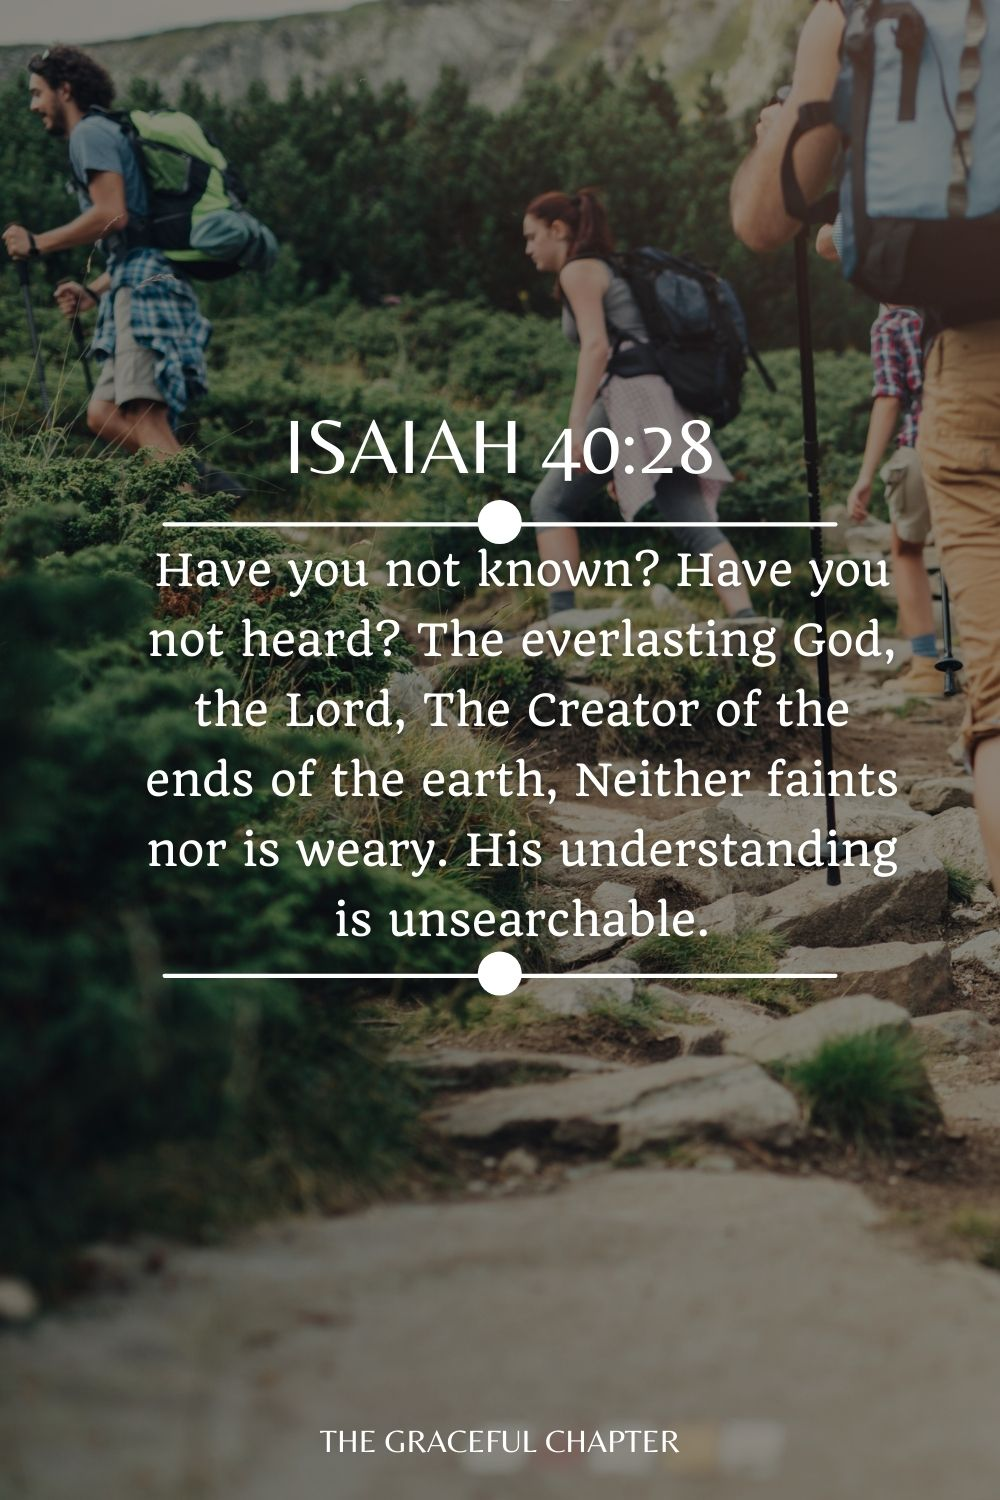 Have you not known? Have you not heard? The everlasting God, the Lord, The Creator of the ends of the earth, Neither faints nor is weary. His understanding is unsearchable. Isaiah 40:28